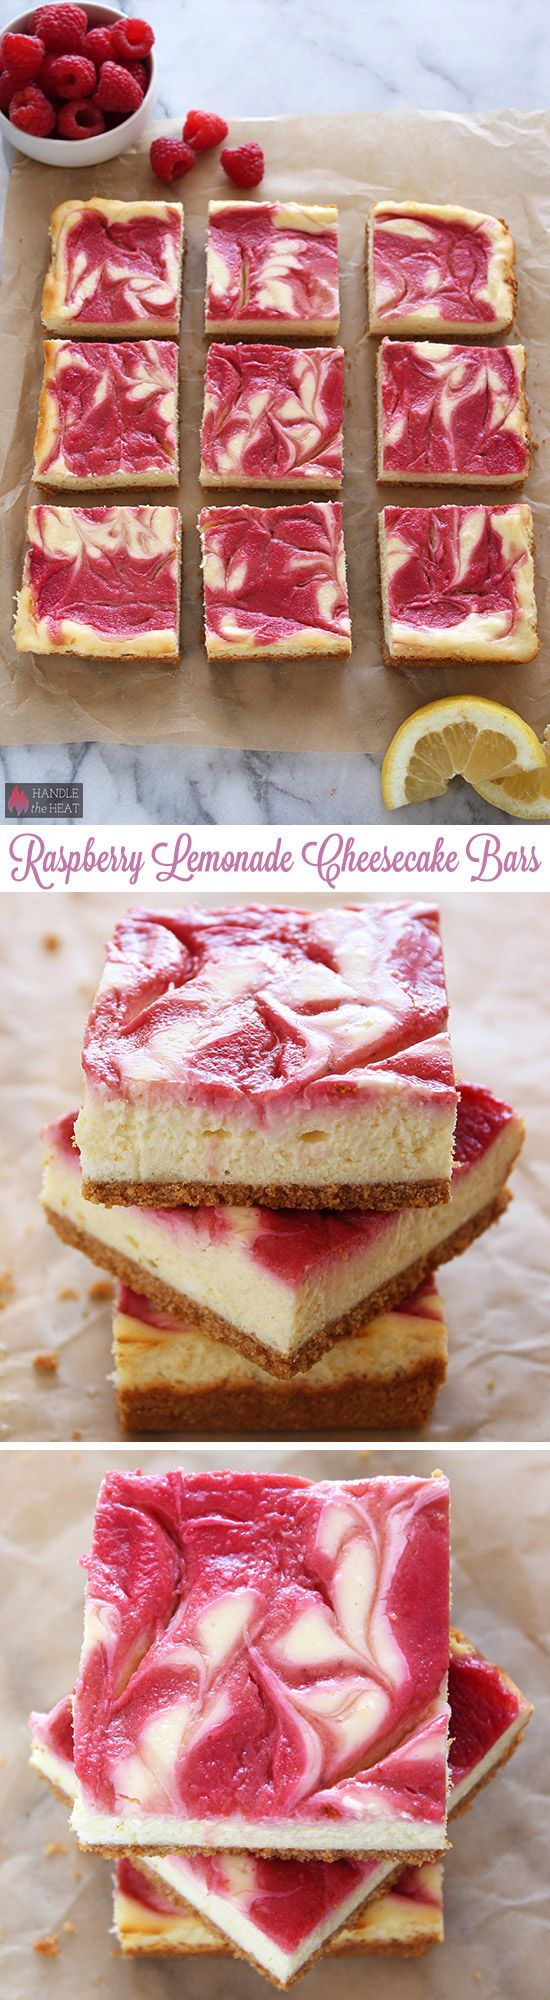 22ebb79e8394e4f5da76c8fe9e82a1d9 - Raspberry Bars Better Homes And Gardens